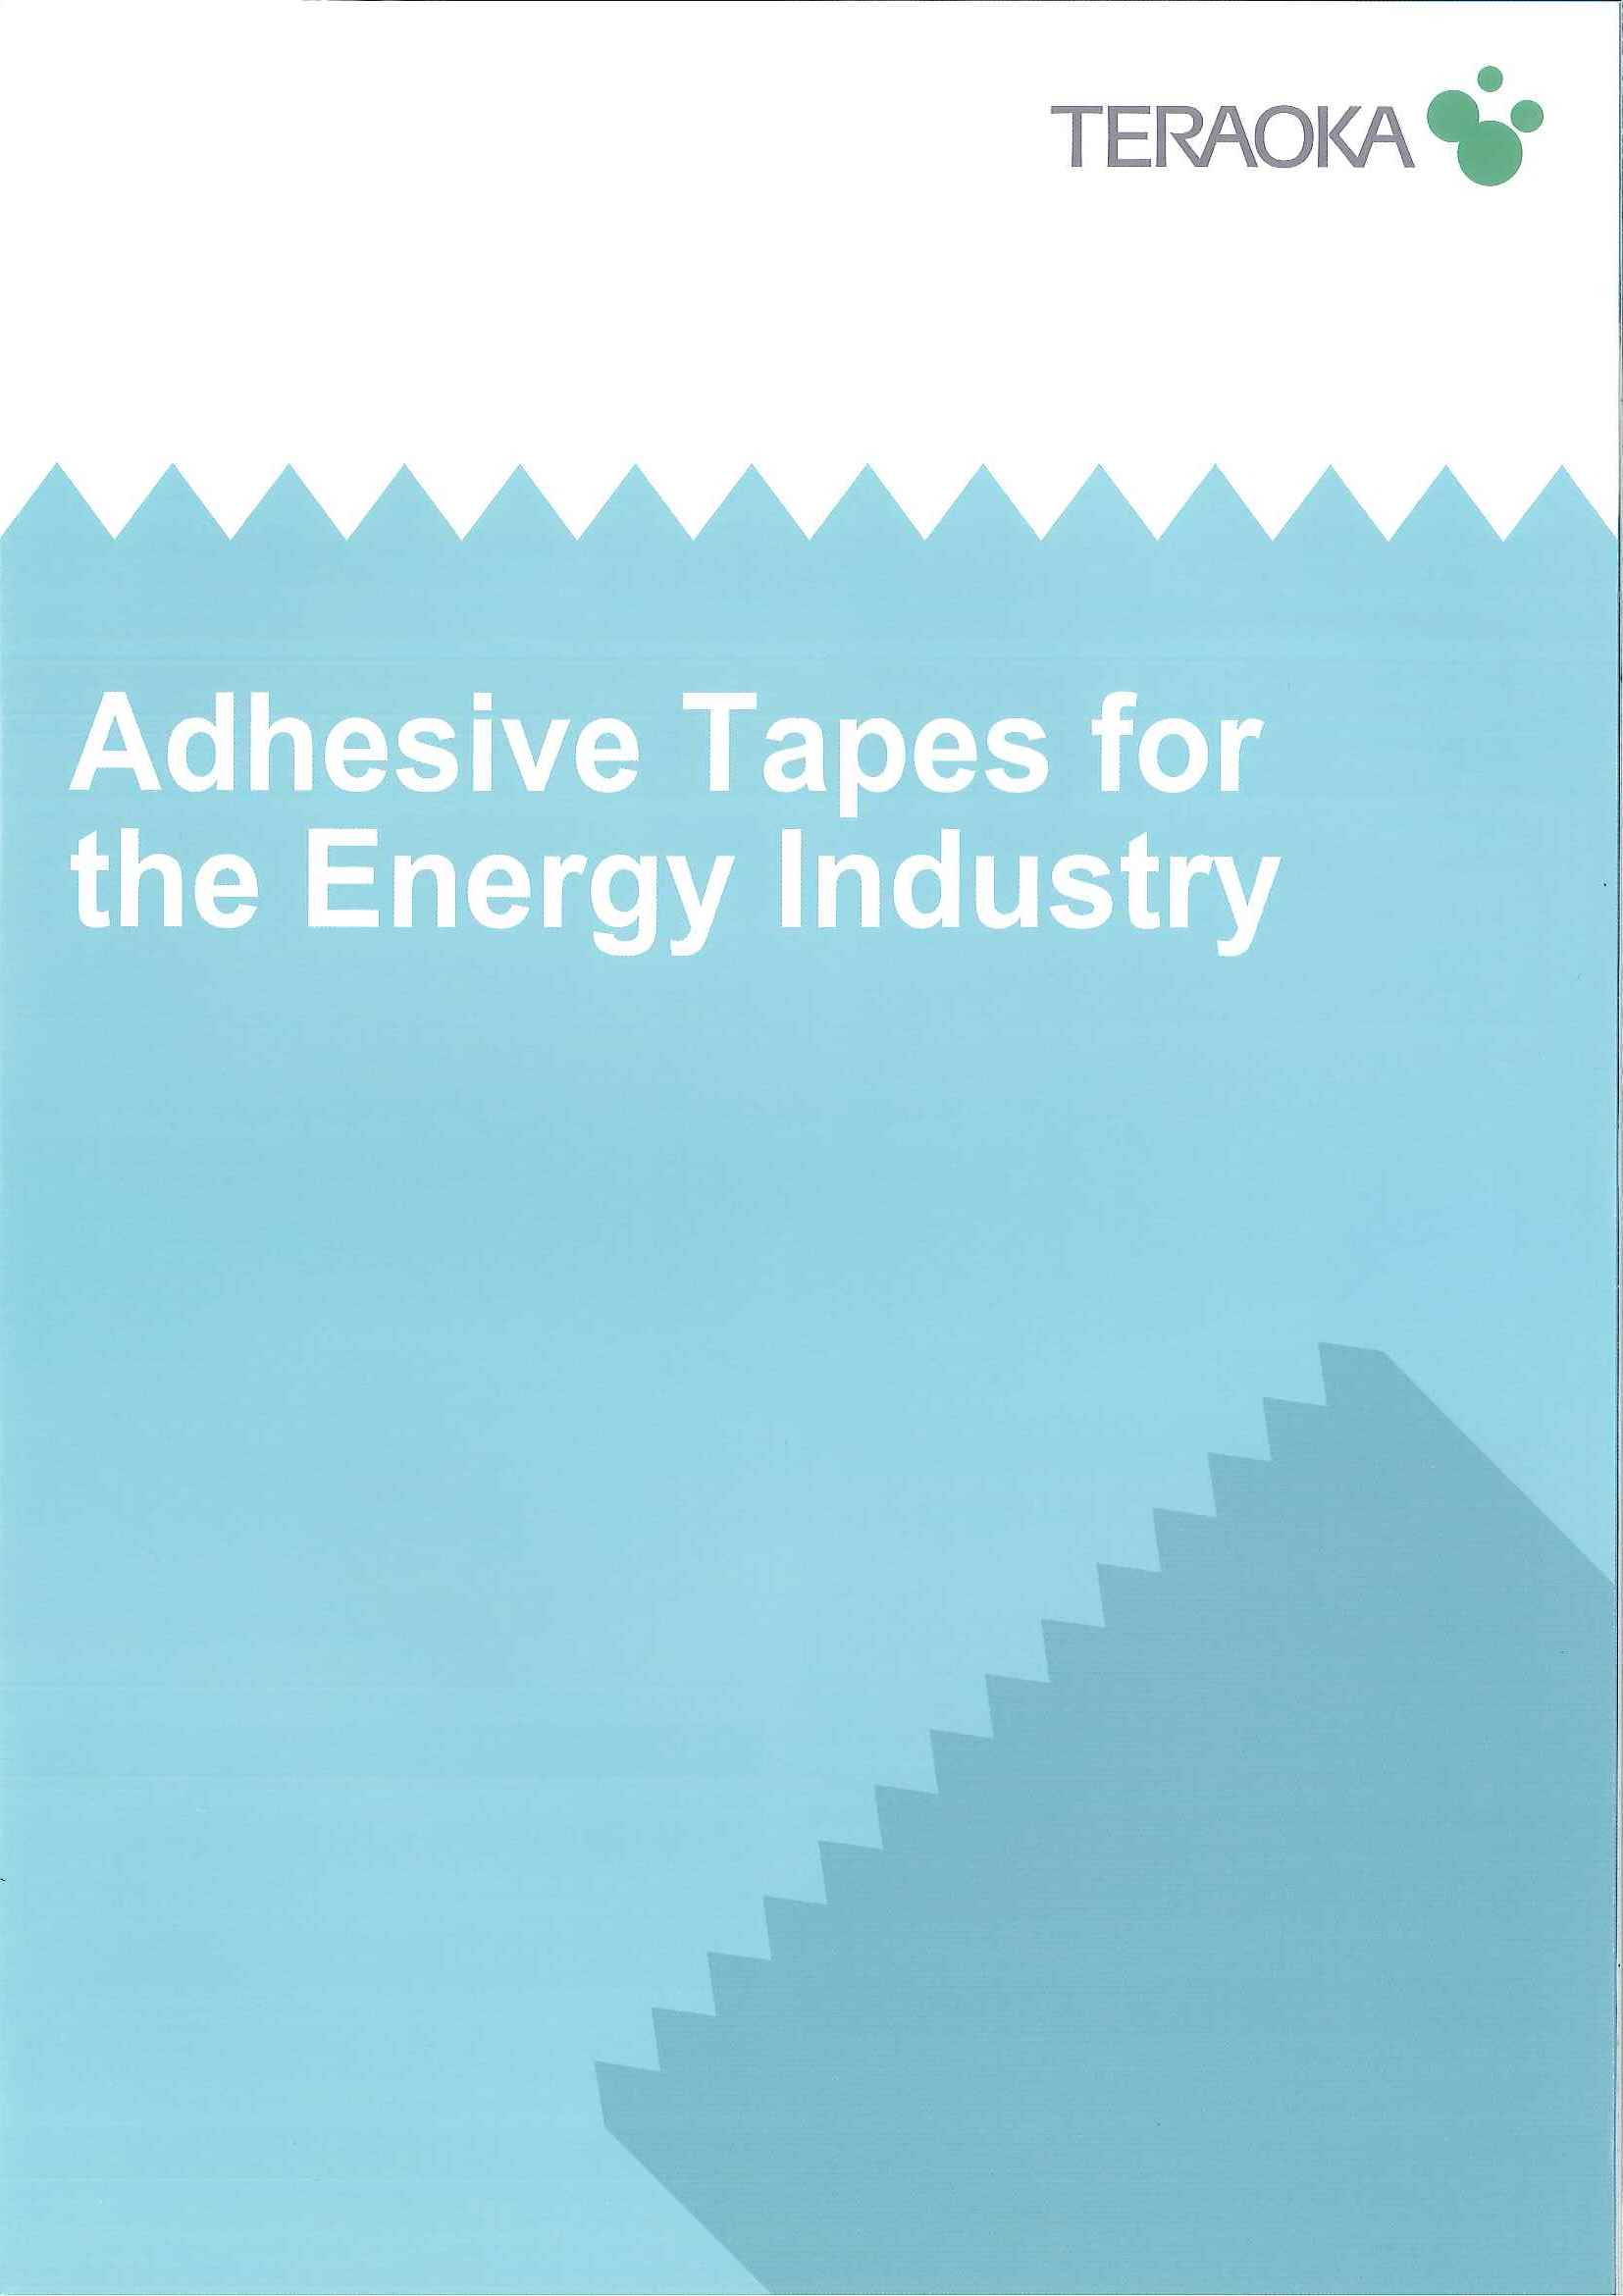 Adhesive Tapes for the Energy Industry